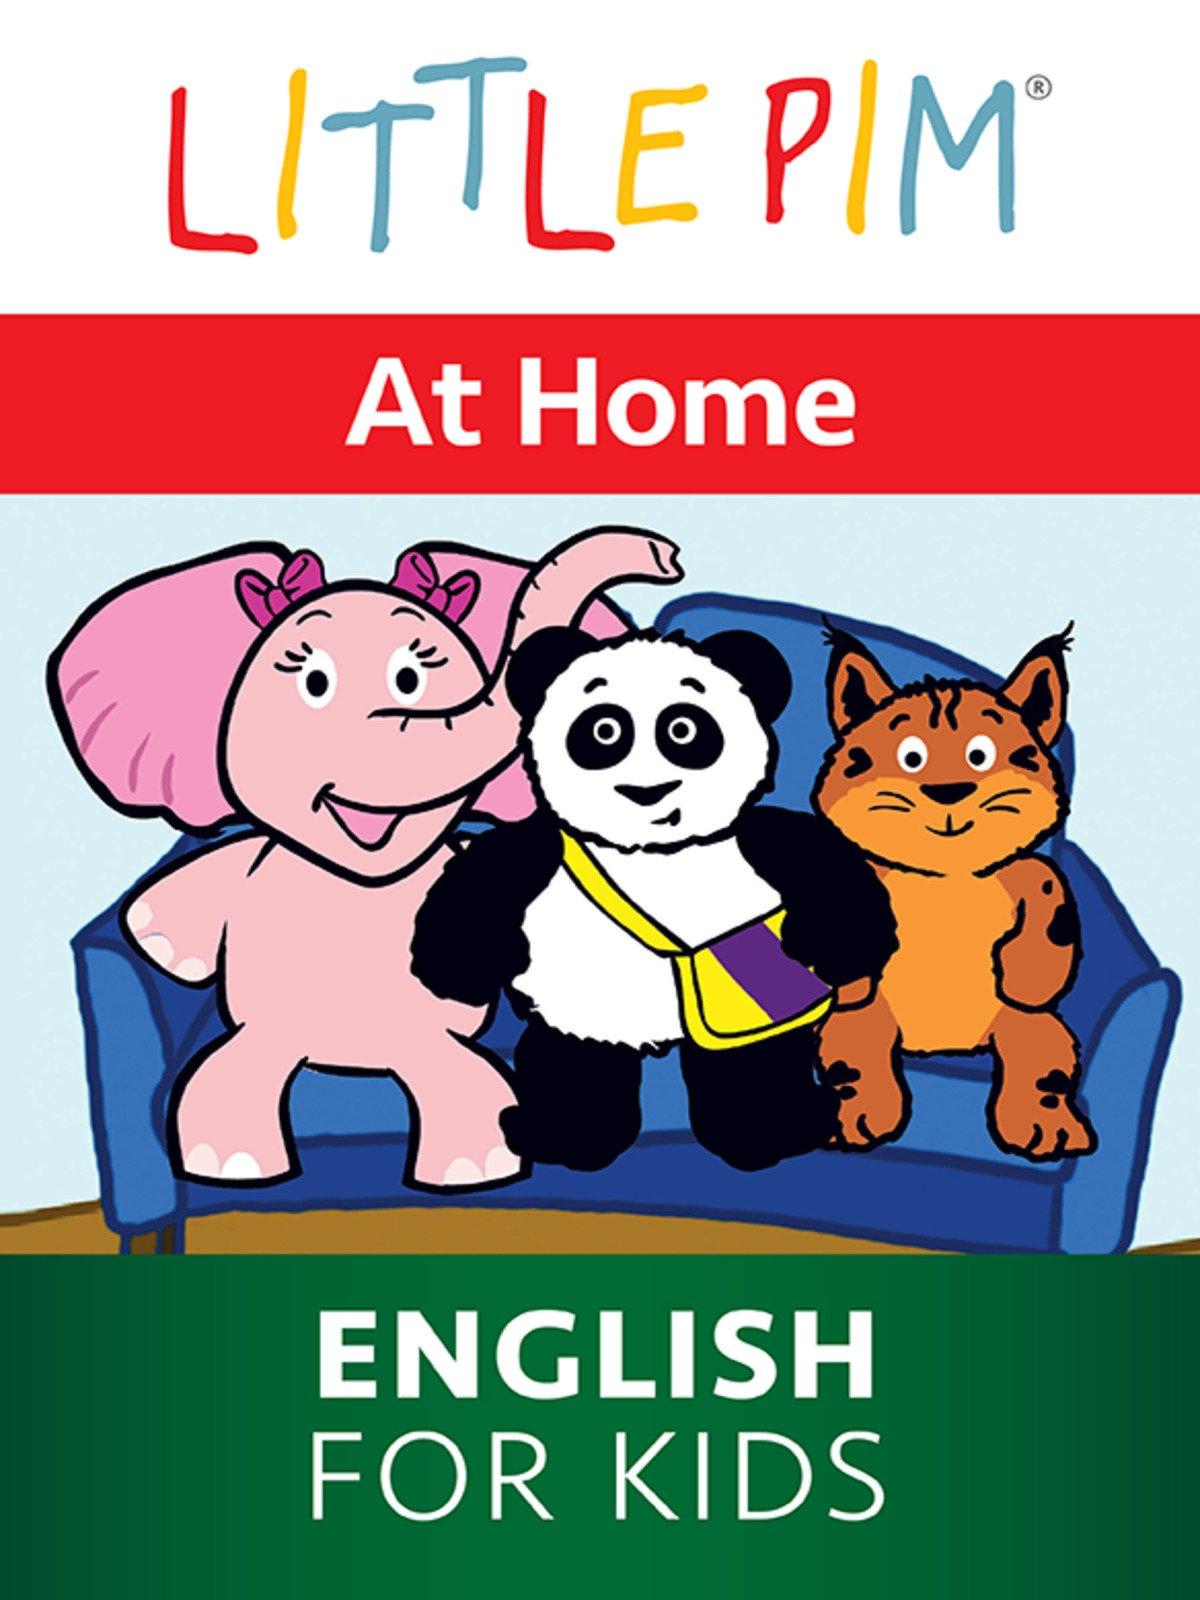 Little Pim: At Home - English for Kids on Amazon Prime Instant Video UK